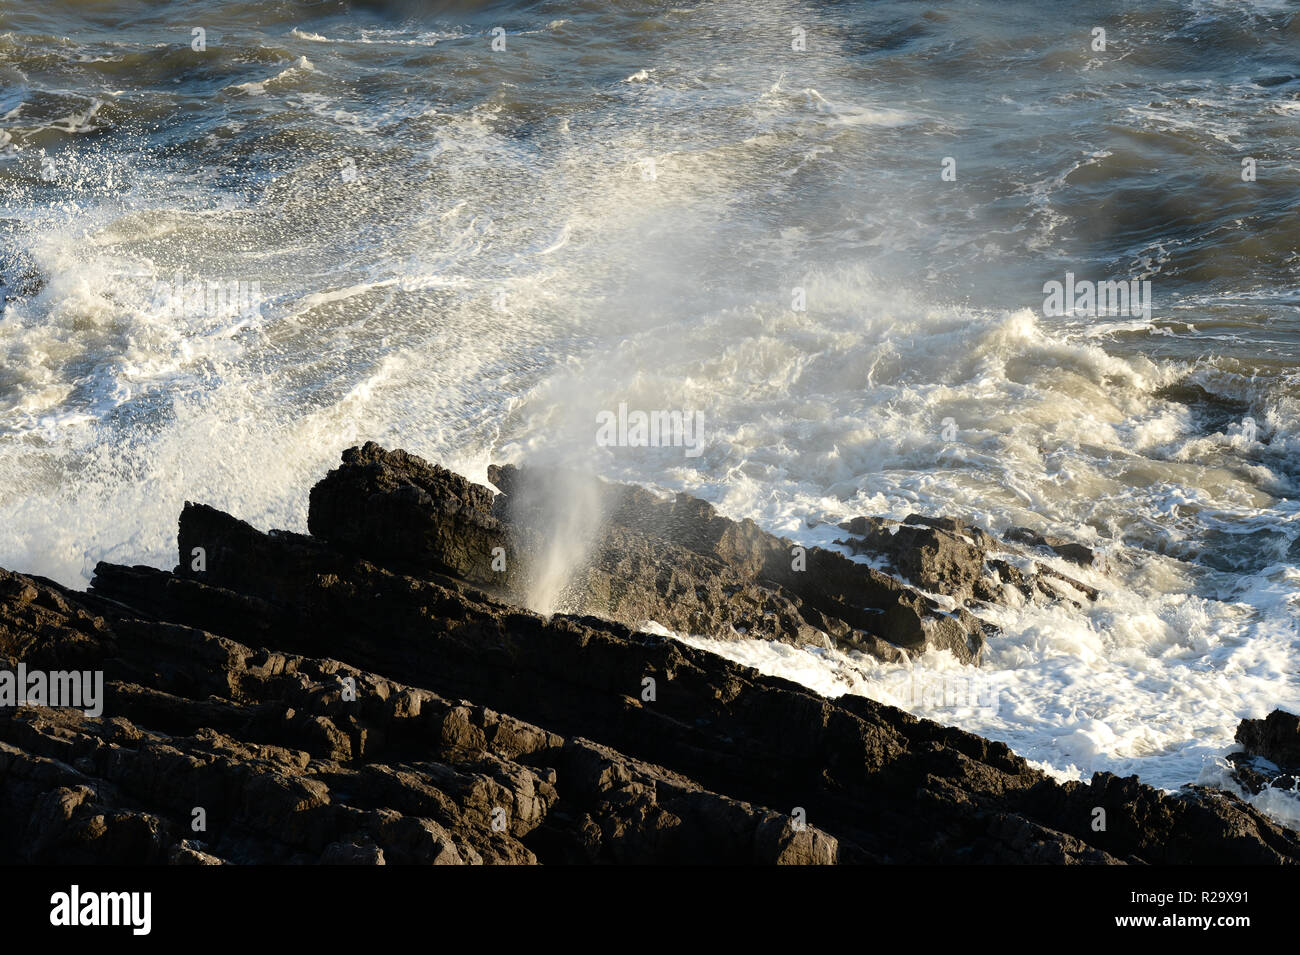 Blow hole on sea cliffs emits spray through fissure between limestone  bedding planesand a loud hissing sound. Stock Photo